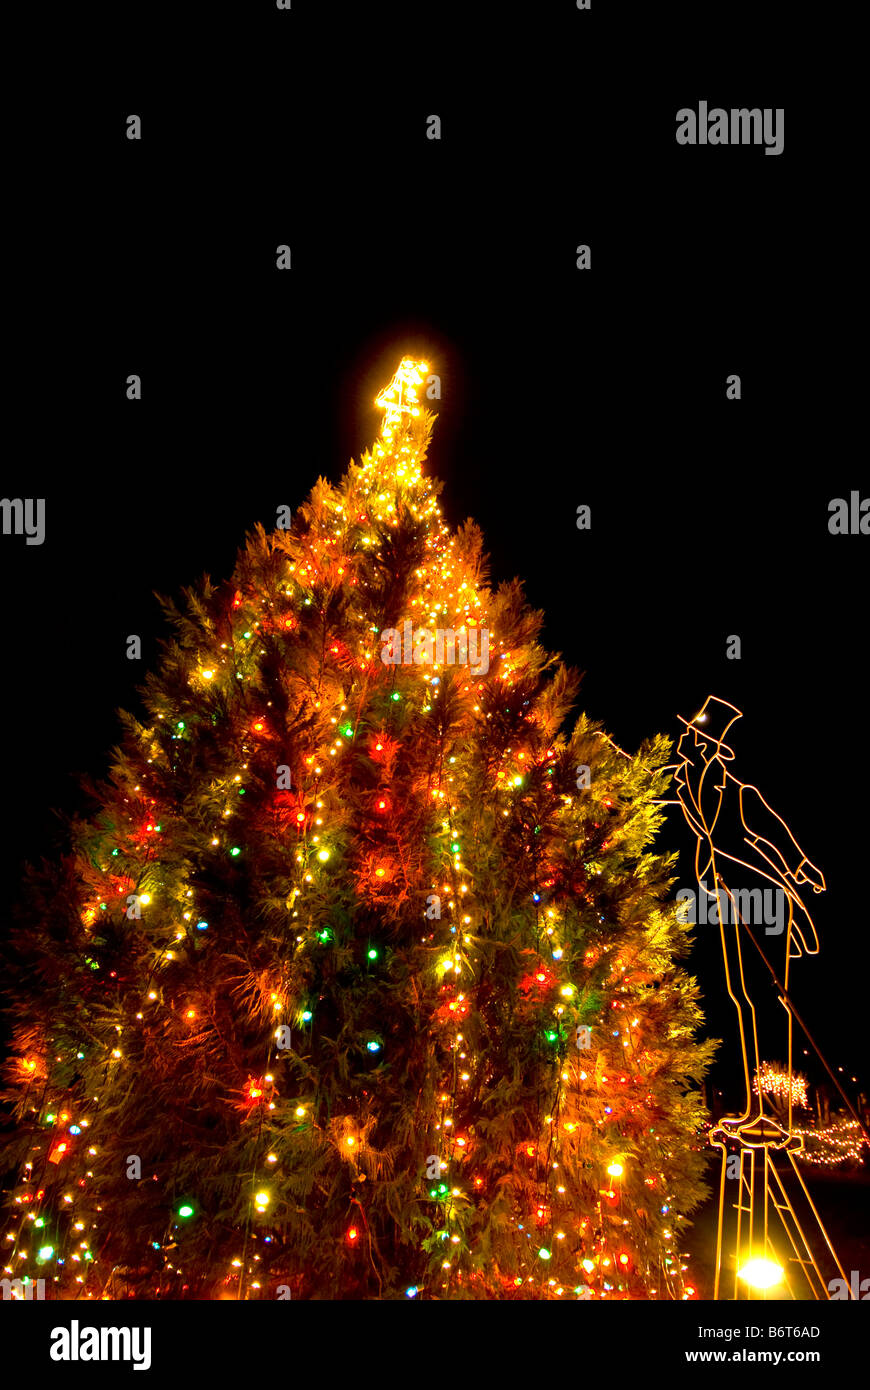 Old Fashioned Christmas Tree Star Stock Photos & Old Fashioned ...